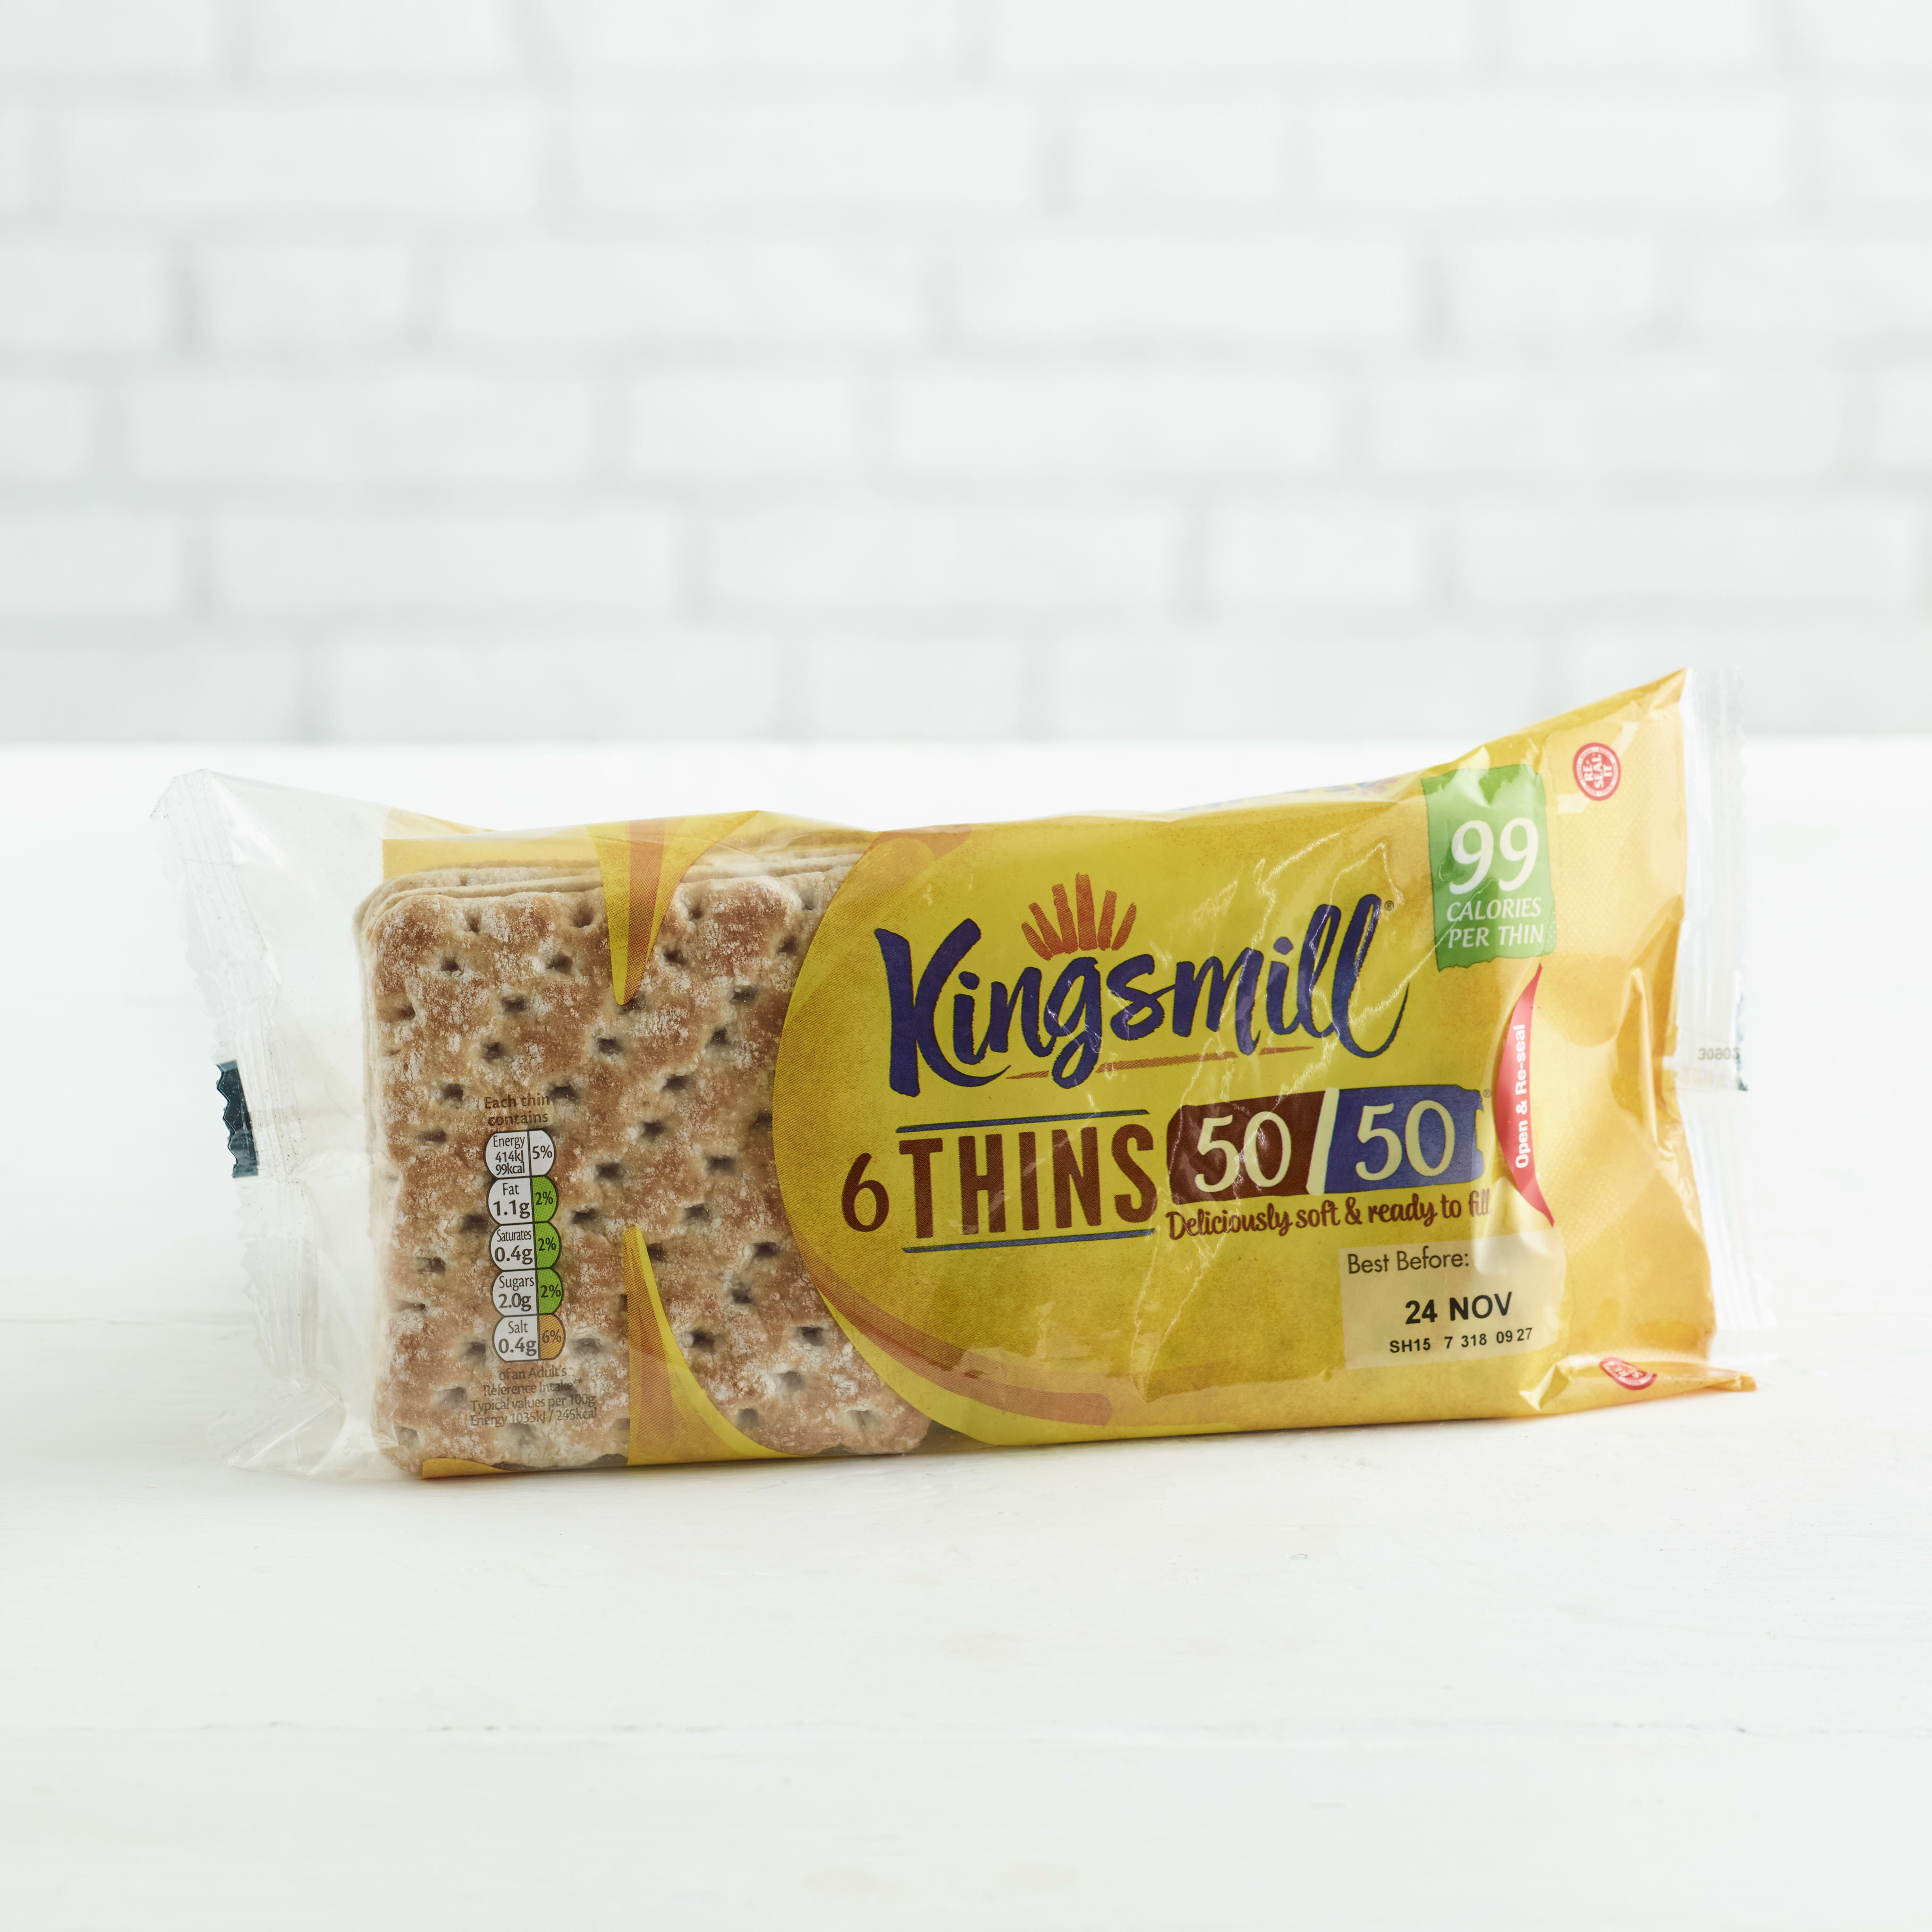 Kingsmill 50/50 Sandwich Thins, 6 pack